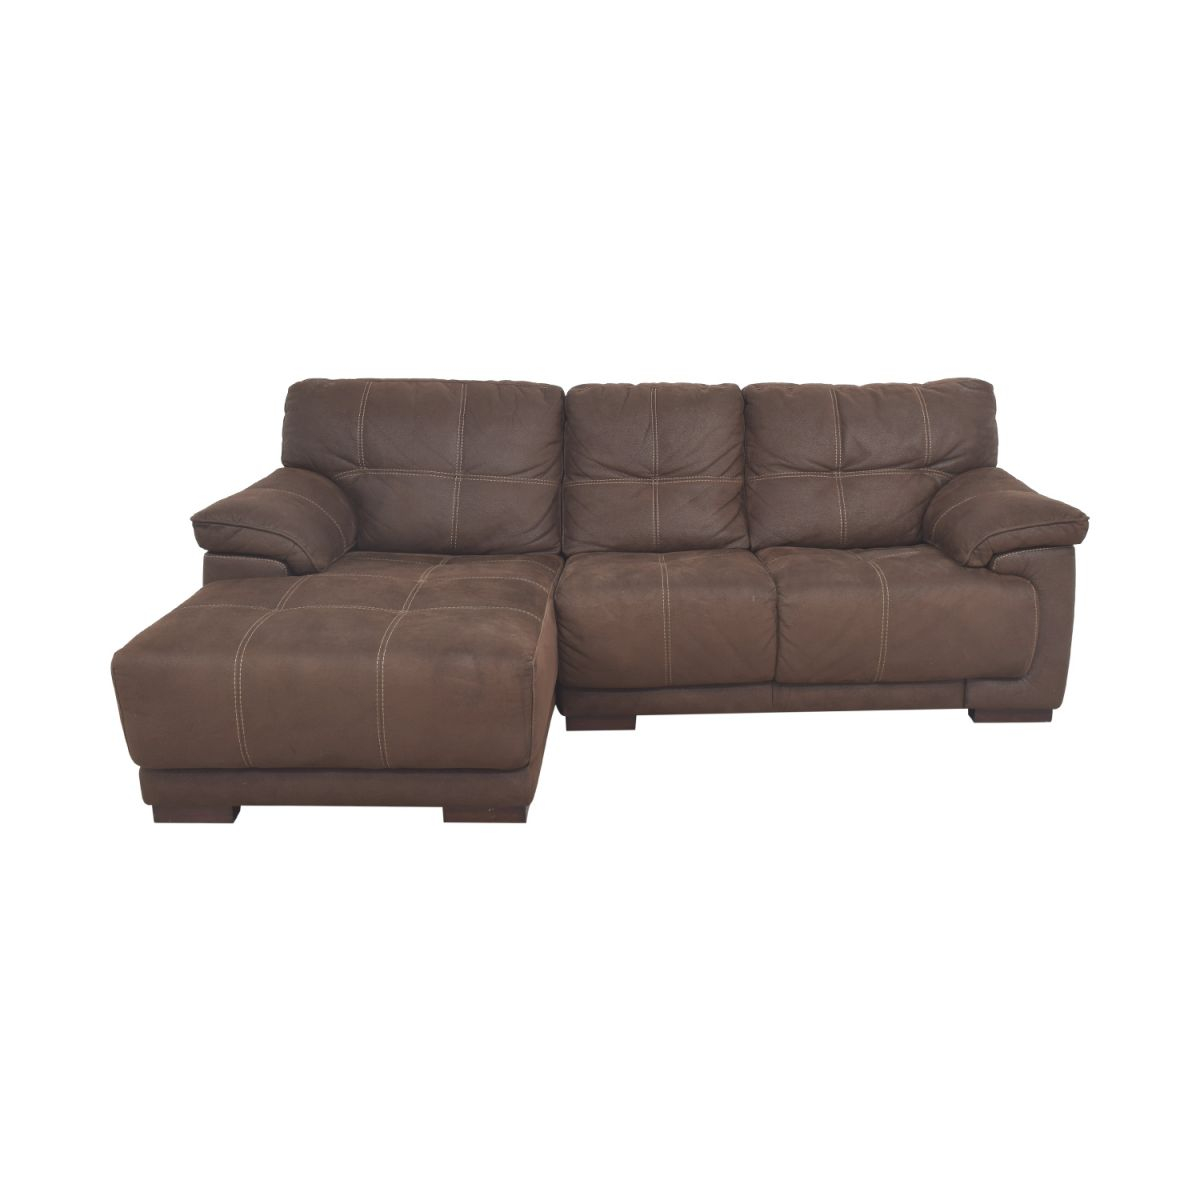 68% Off - Raymour & Flanigan Raymour & Flanigan Microfiber Sectional Sofa / Sofas throughout Lovely Raymour And Flanigan Sectional Sofas